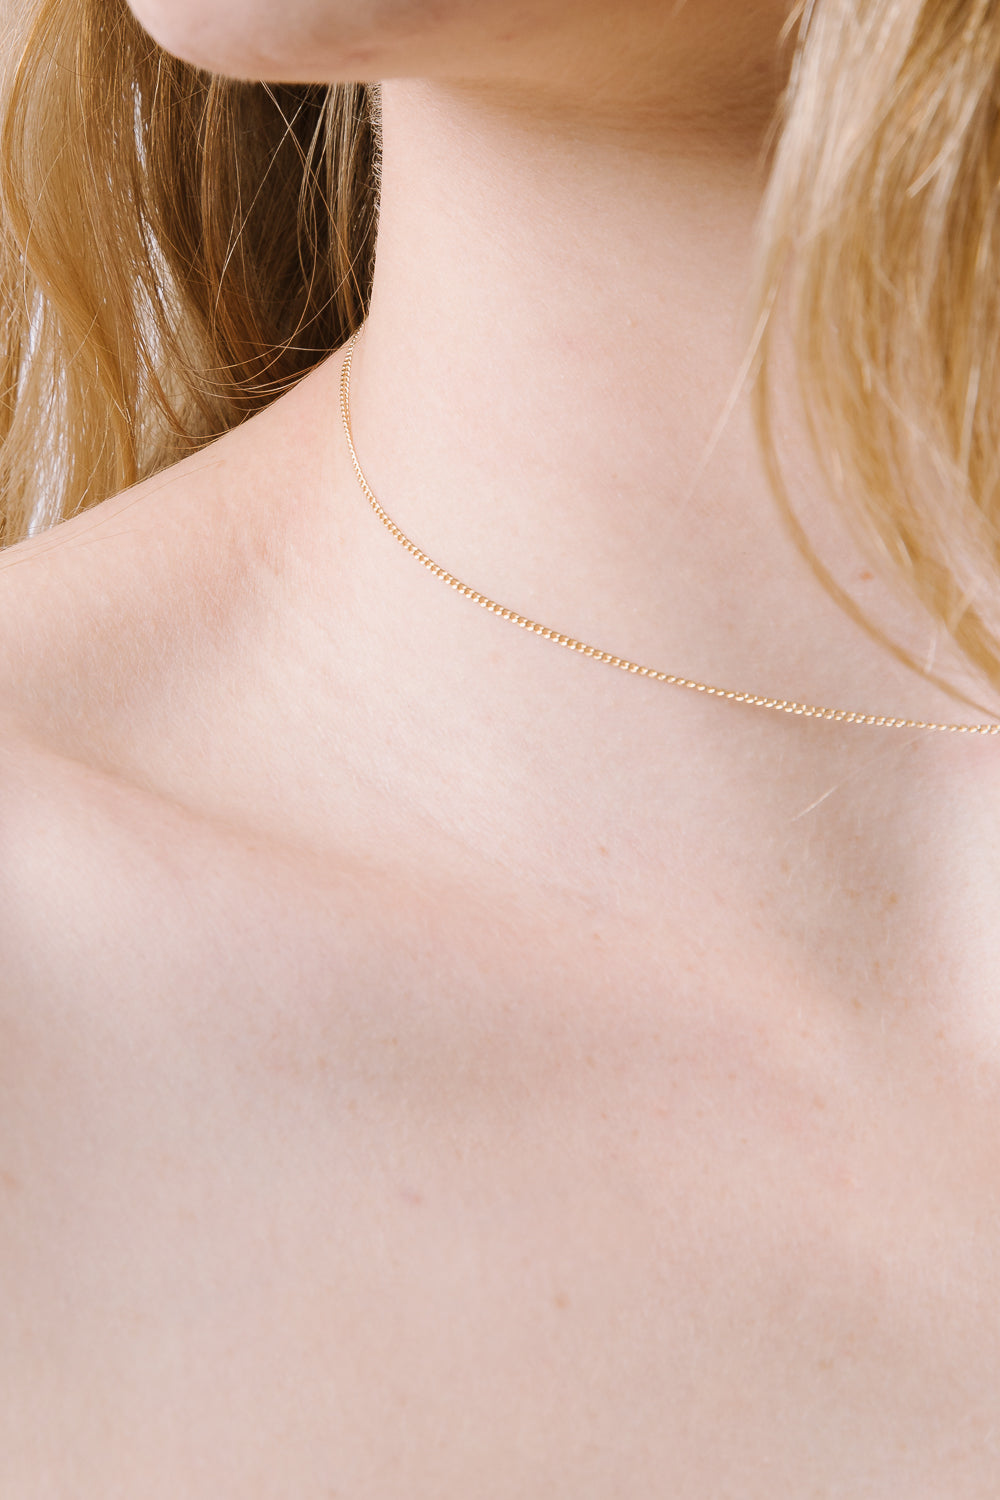 Plain Chain Choker in Gold